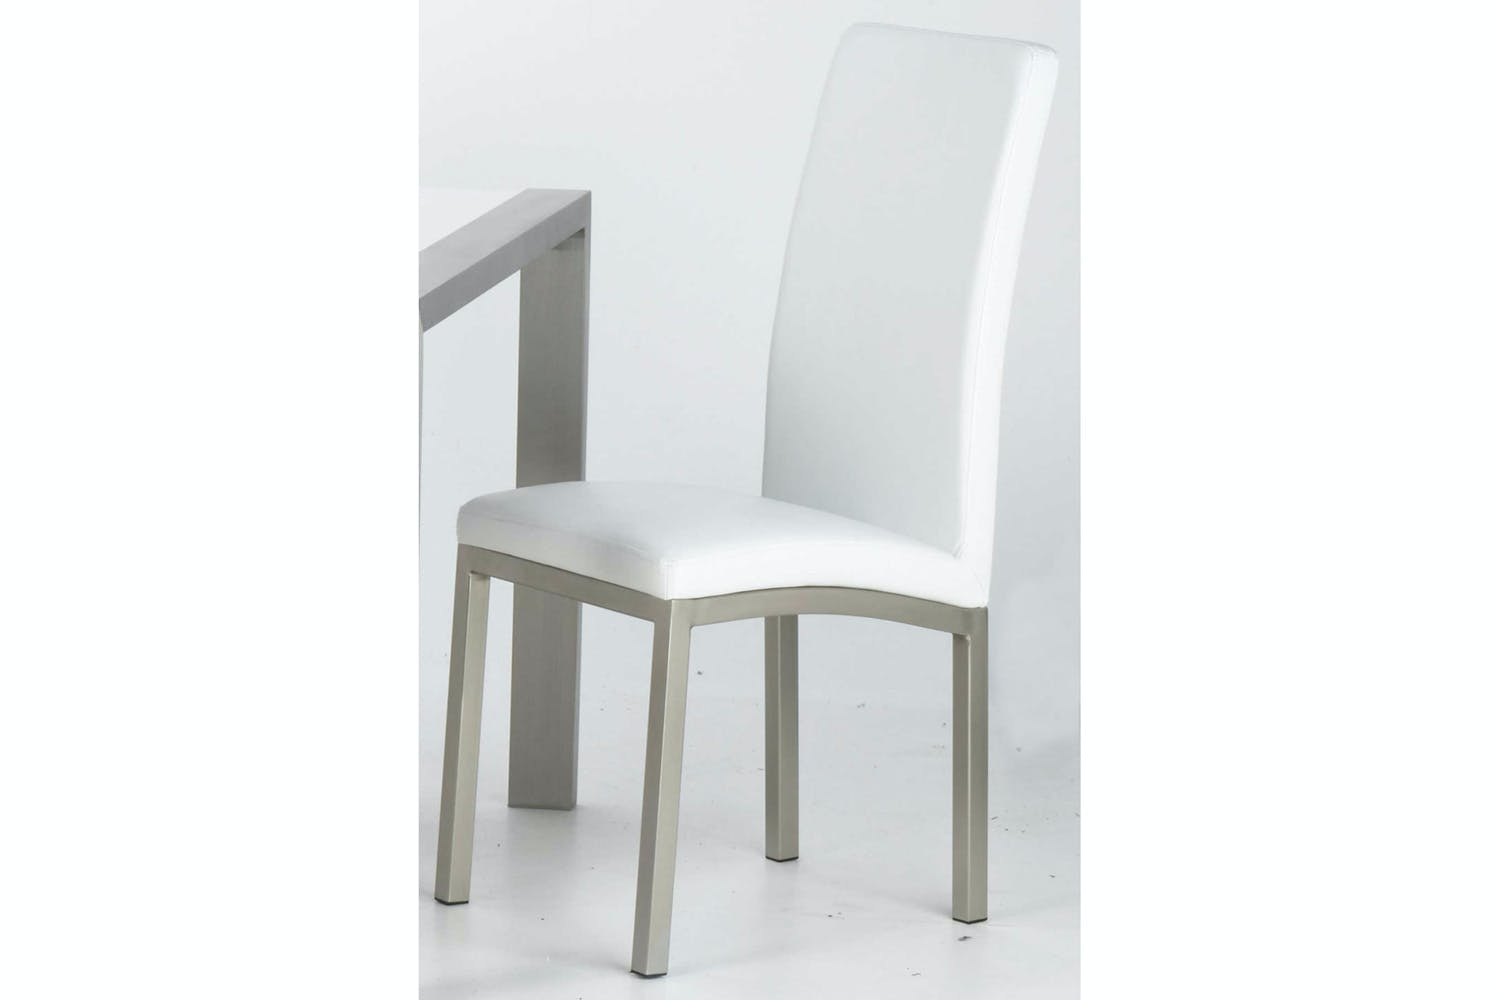 Surprising Galaxy Dining Chair By John Young Furniture Ibusinesslaw Wood Chair Design Ideas Ibusinesslaworg